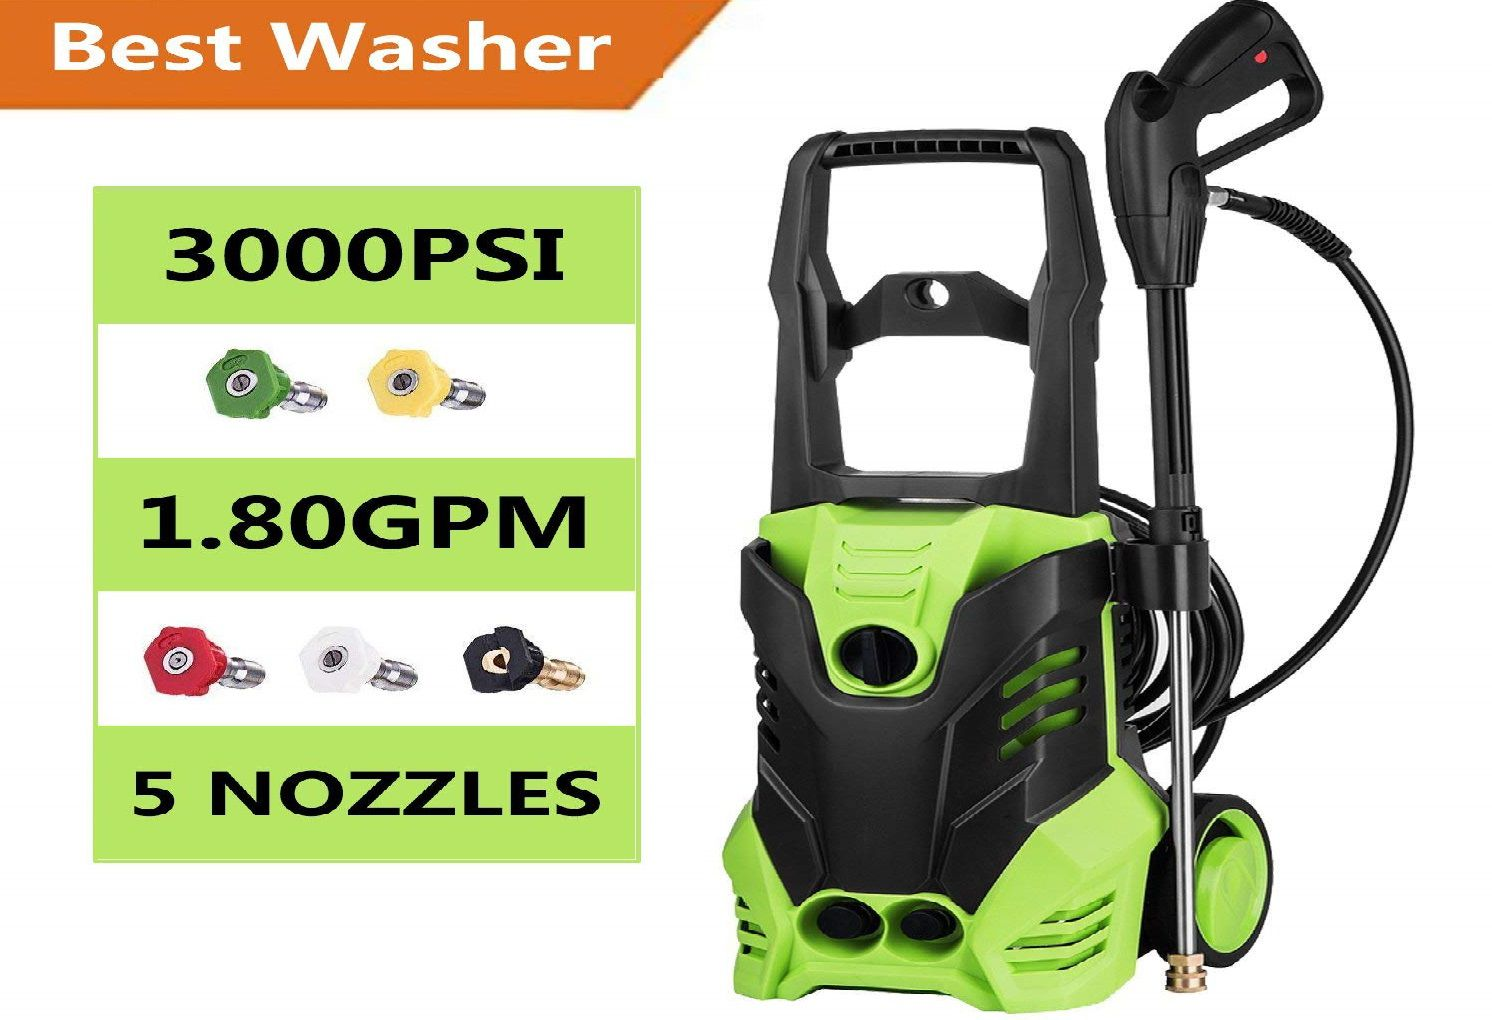 Jaketen 3000 PSI Electric Pressure Washer Review